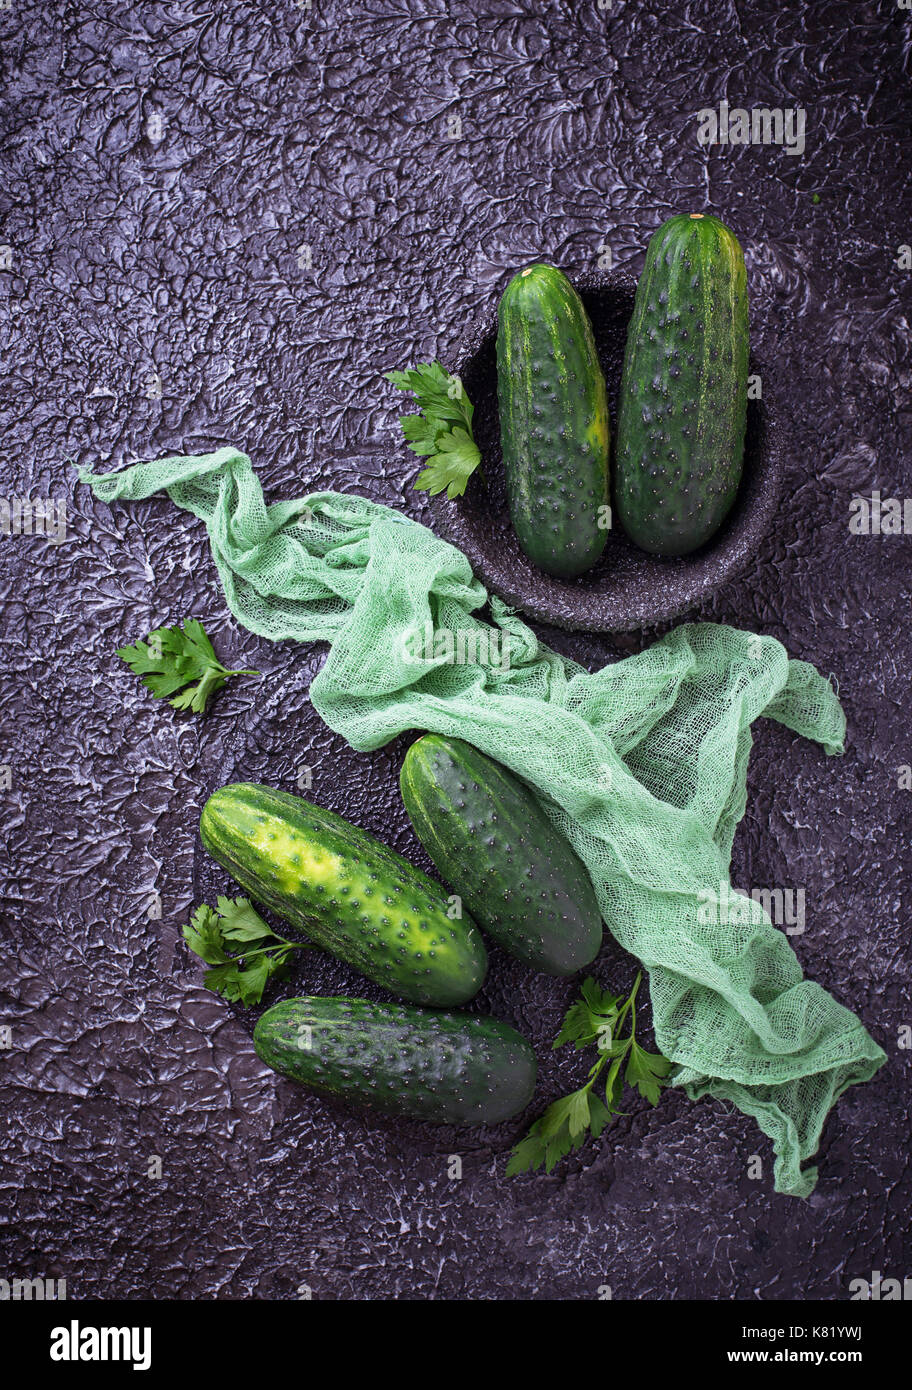 Fresh cucumbers on concrete background - Stock Image